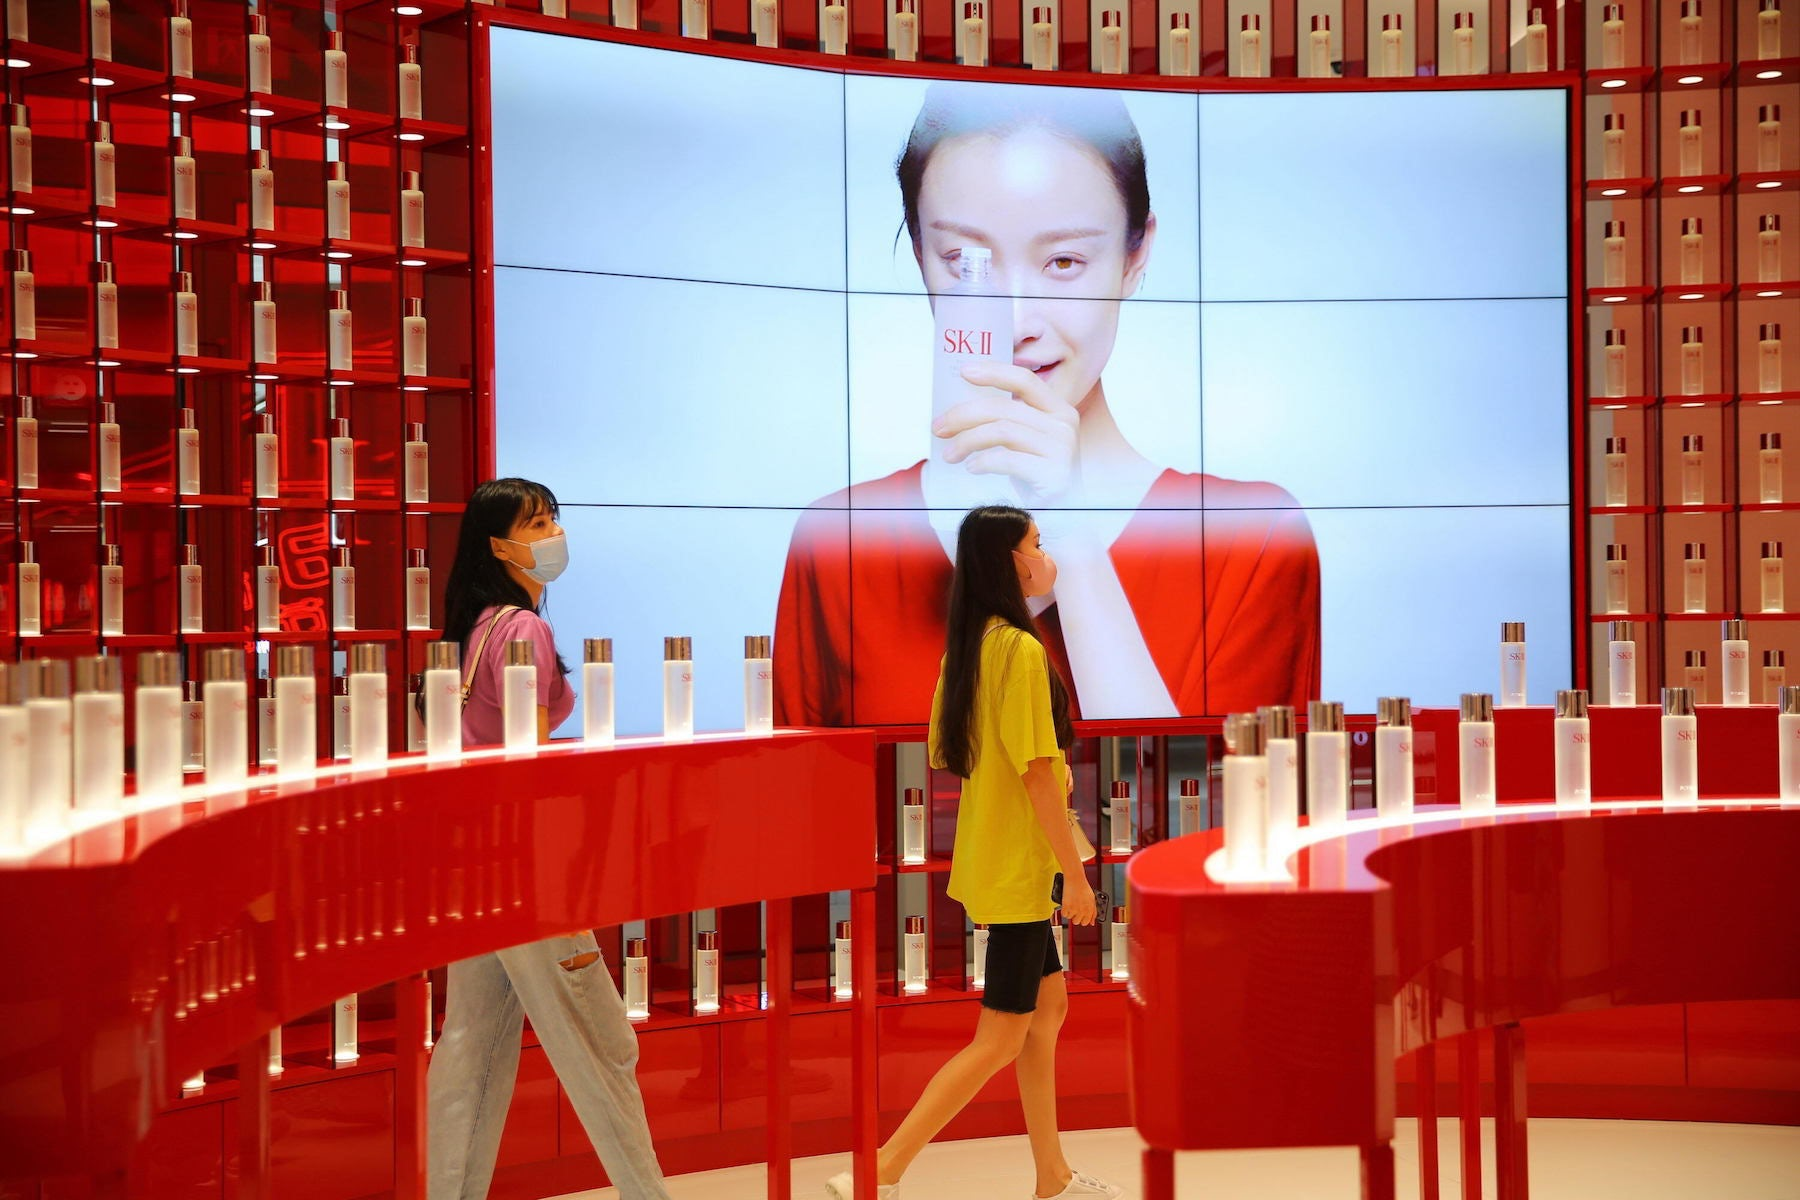 Customers purchase cosmetics at a duty-free shop in the Hainan Province of China. Getty Images.